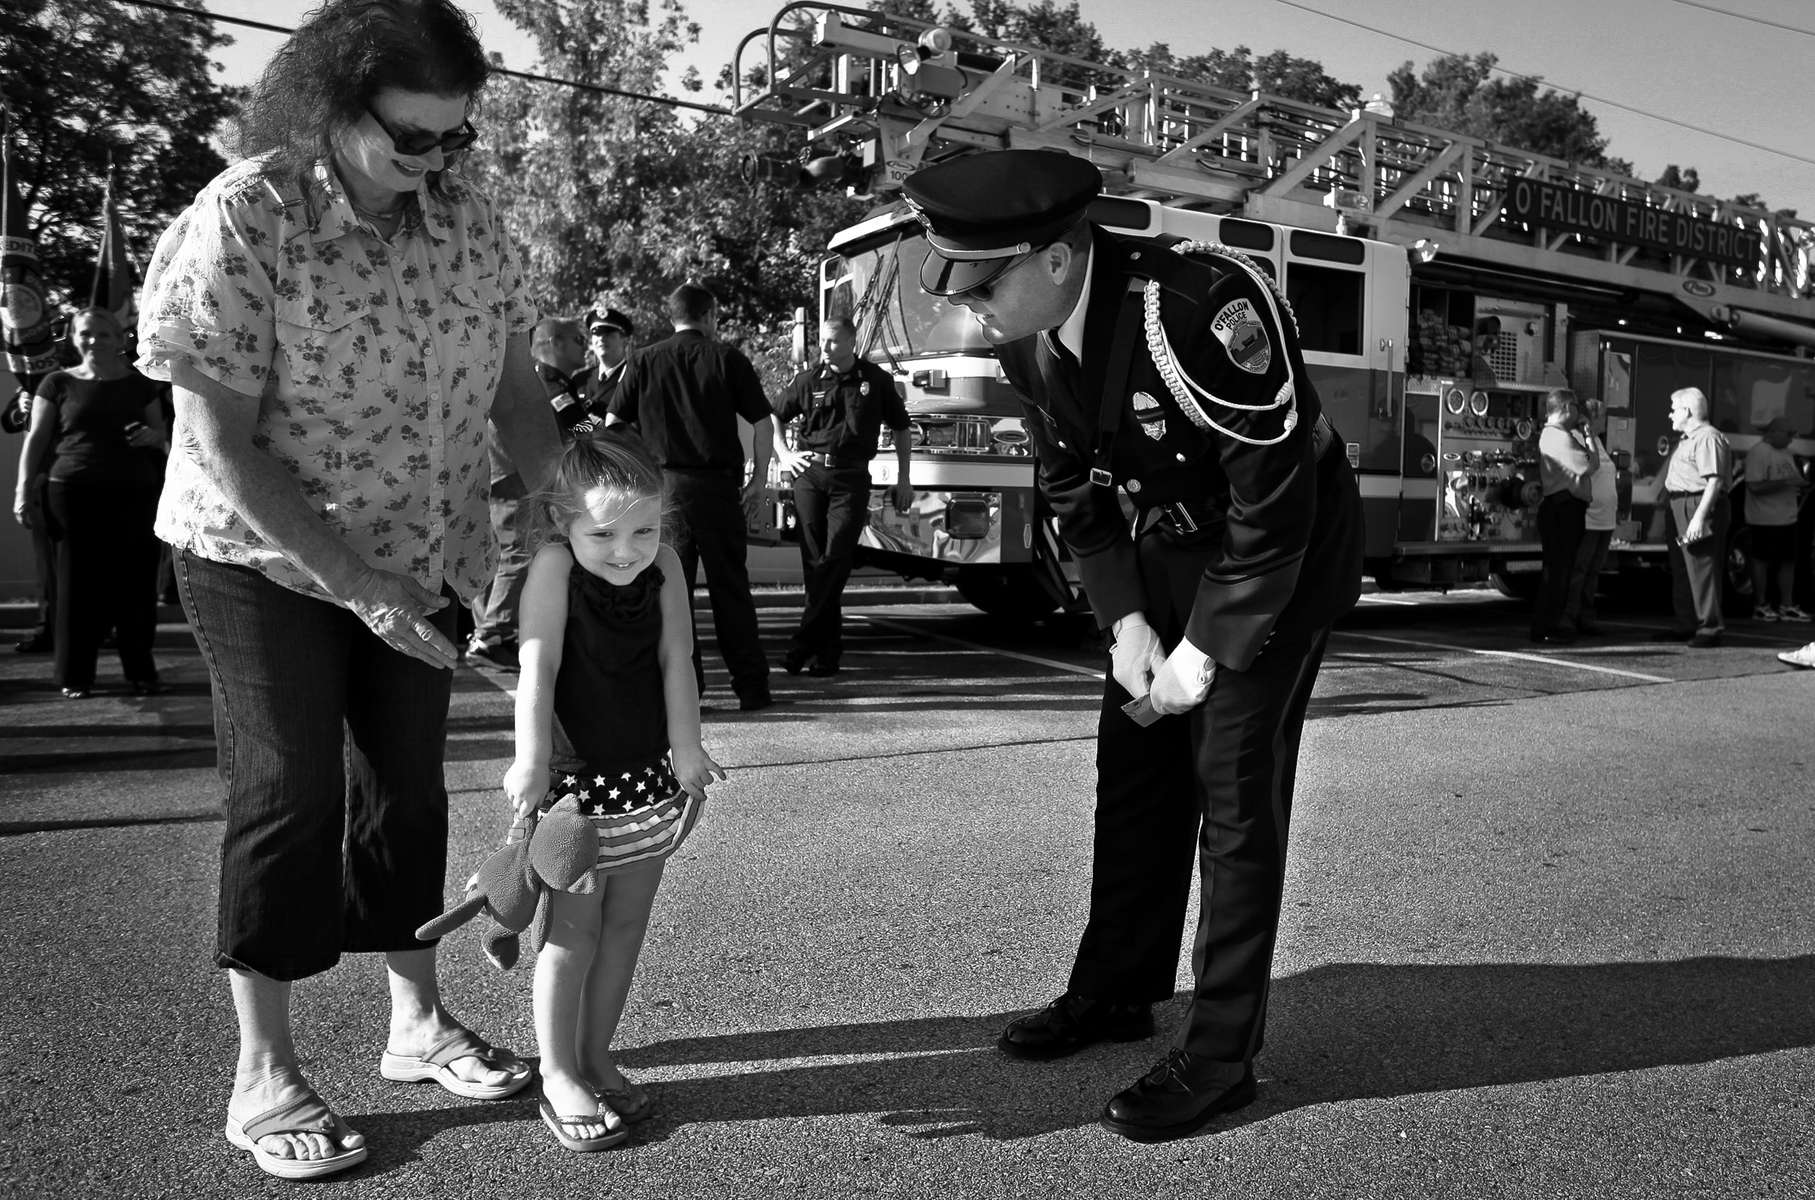 Jeanne Tallman escorts her granddaughter Whitney Weeks, 3, as she hands a coloring she did to O'Fallon police officer Mike Plum after a ceremony honoring first responders in O'Fallon, Mo. on Wednesday, Sept. 11, 2013.  {quote}She wanted him (Plum) to know she was thinking about them{quote} said Tallman who said the coloring paid tribute to the fire fighters and police officers who gave their lives on September 11.  The City of O'Fallon, Mo. hosted a Patriot Day Ceremony, a Tribute to First Responders by a piece of the twisted steel from the World Trade Center at the Municipal Centre.Photo By David Carson, dcarson@post-dispatch.com